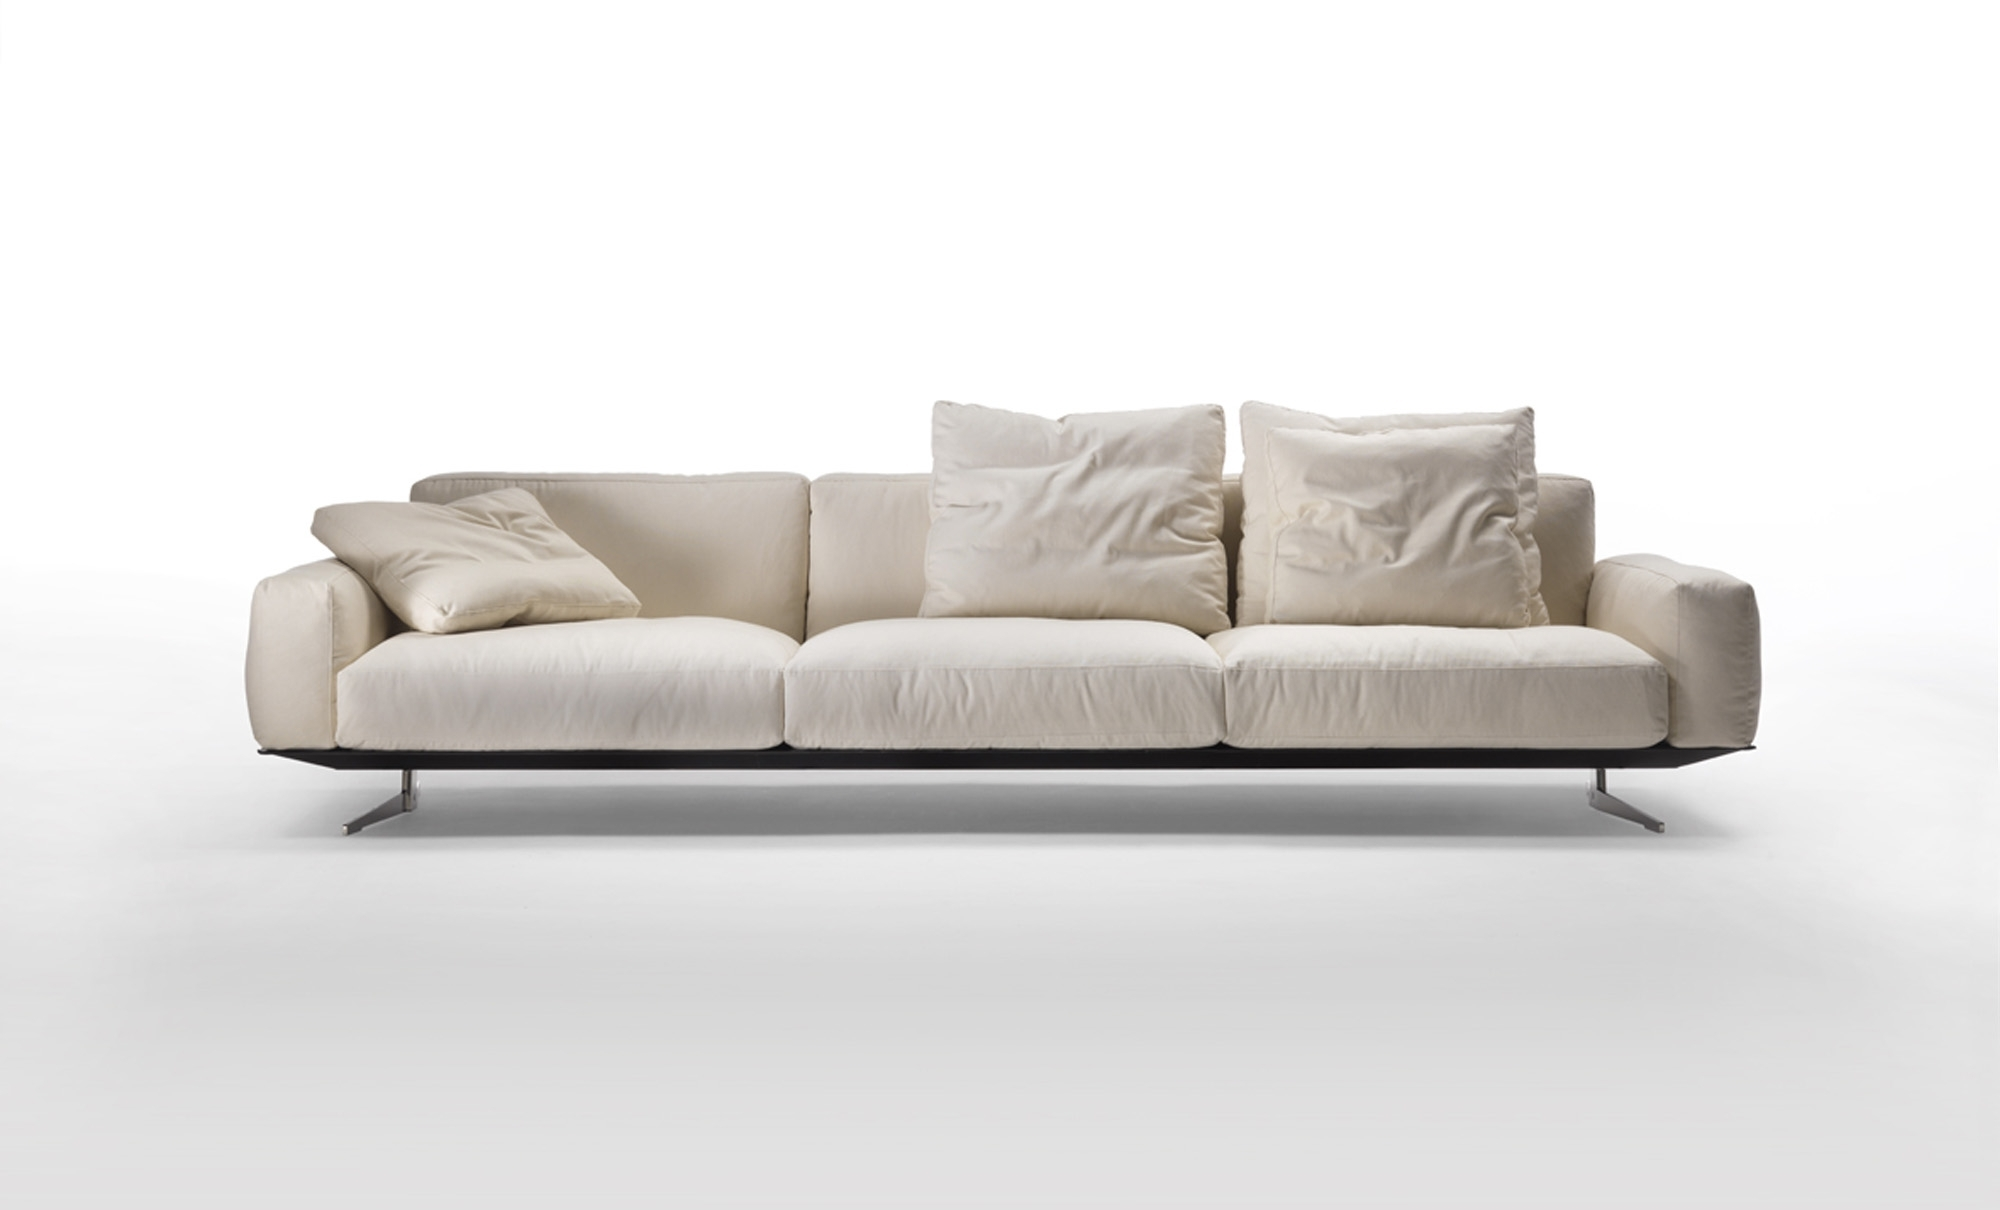 Widely Used Soft Dream – Sofas – Fanuli Furniture For Soft Sofas (View 14 of 15)